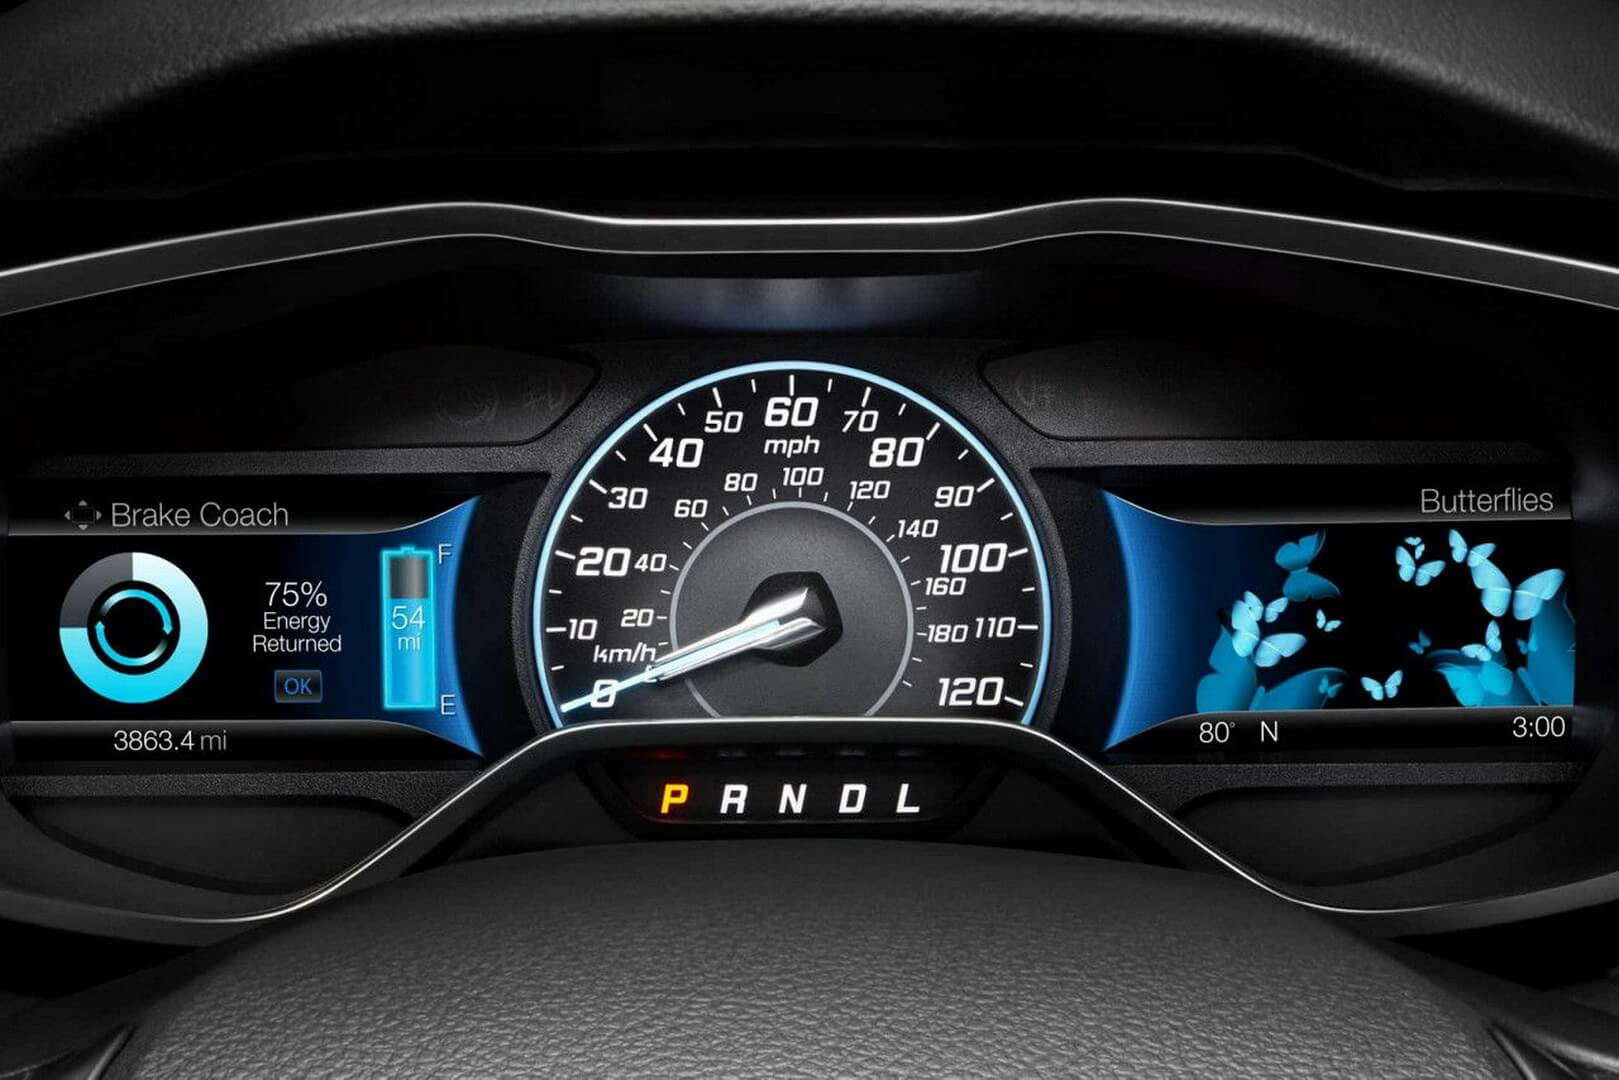 Ford Focus Electric 34kwh-interior-2